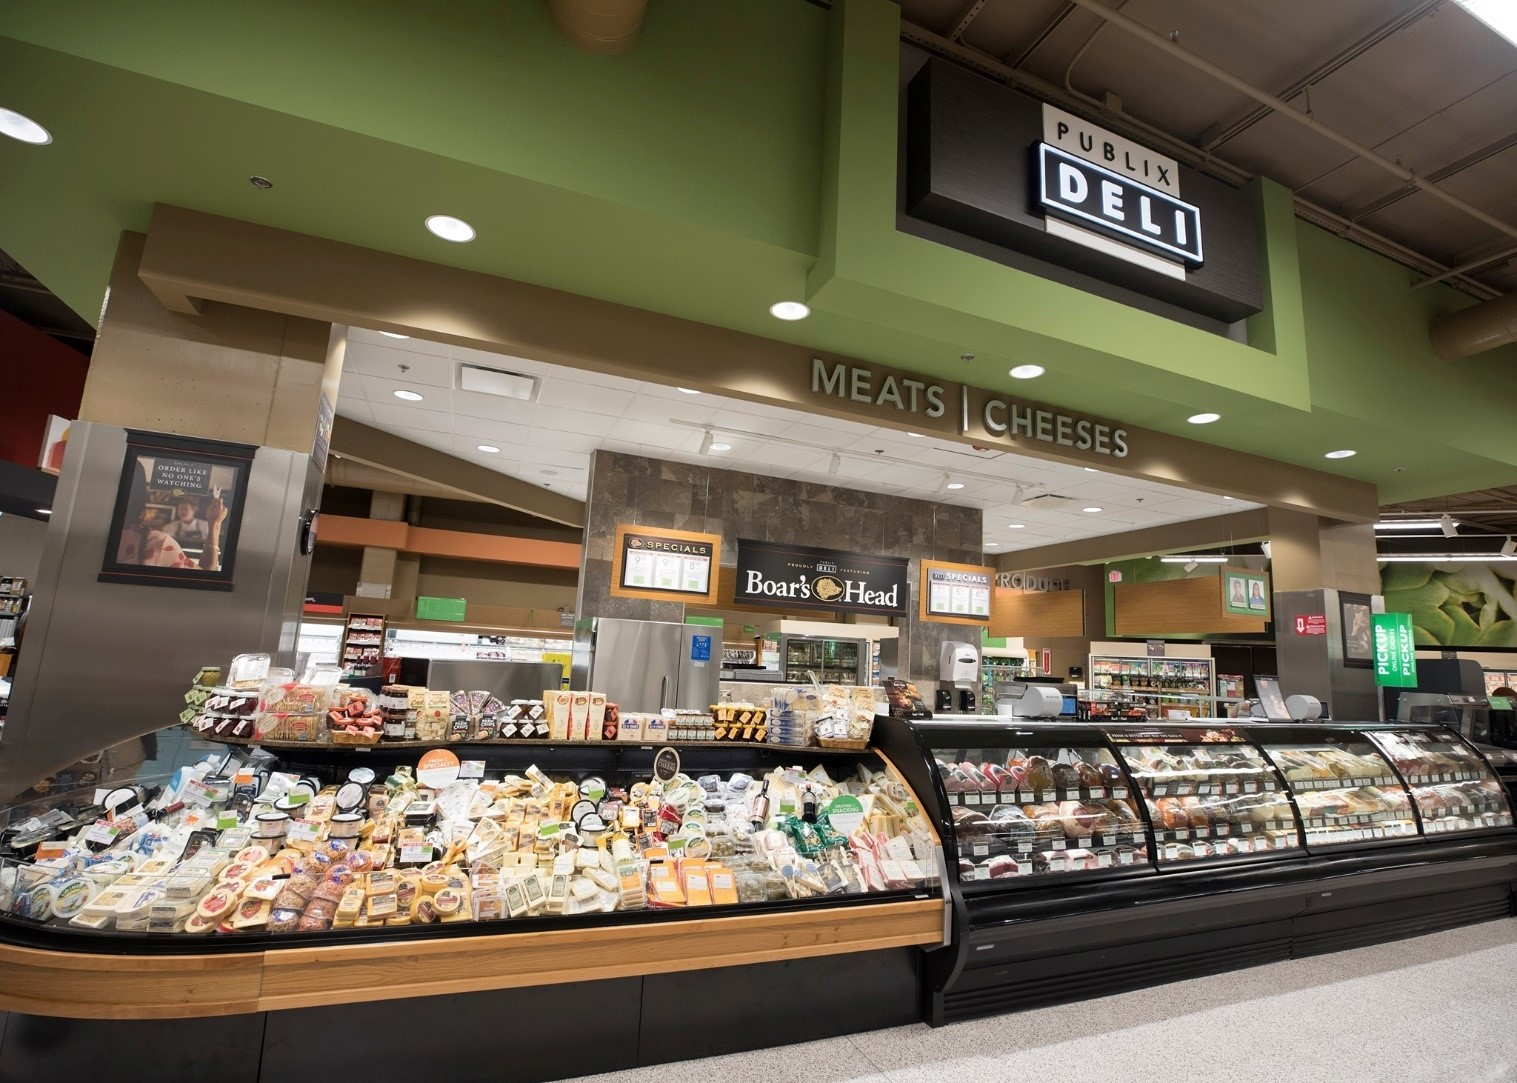 Why Southeastern People Love Shopping At Publix So Much-fig 1